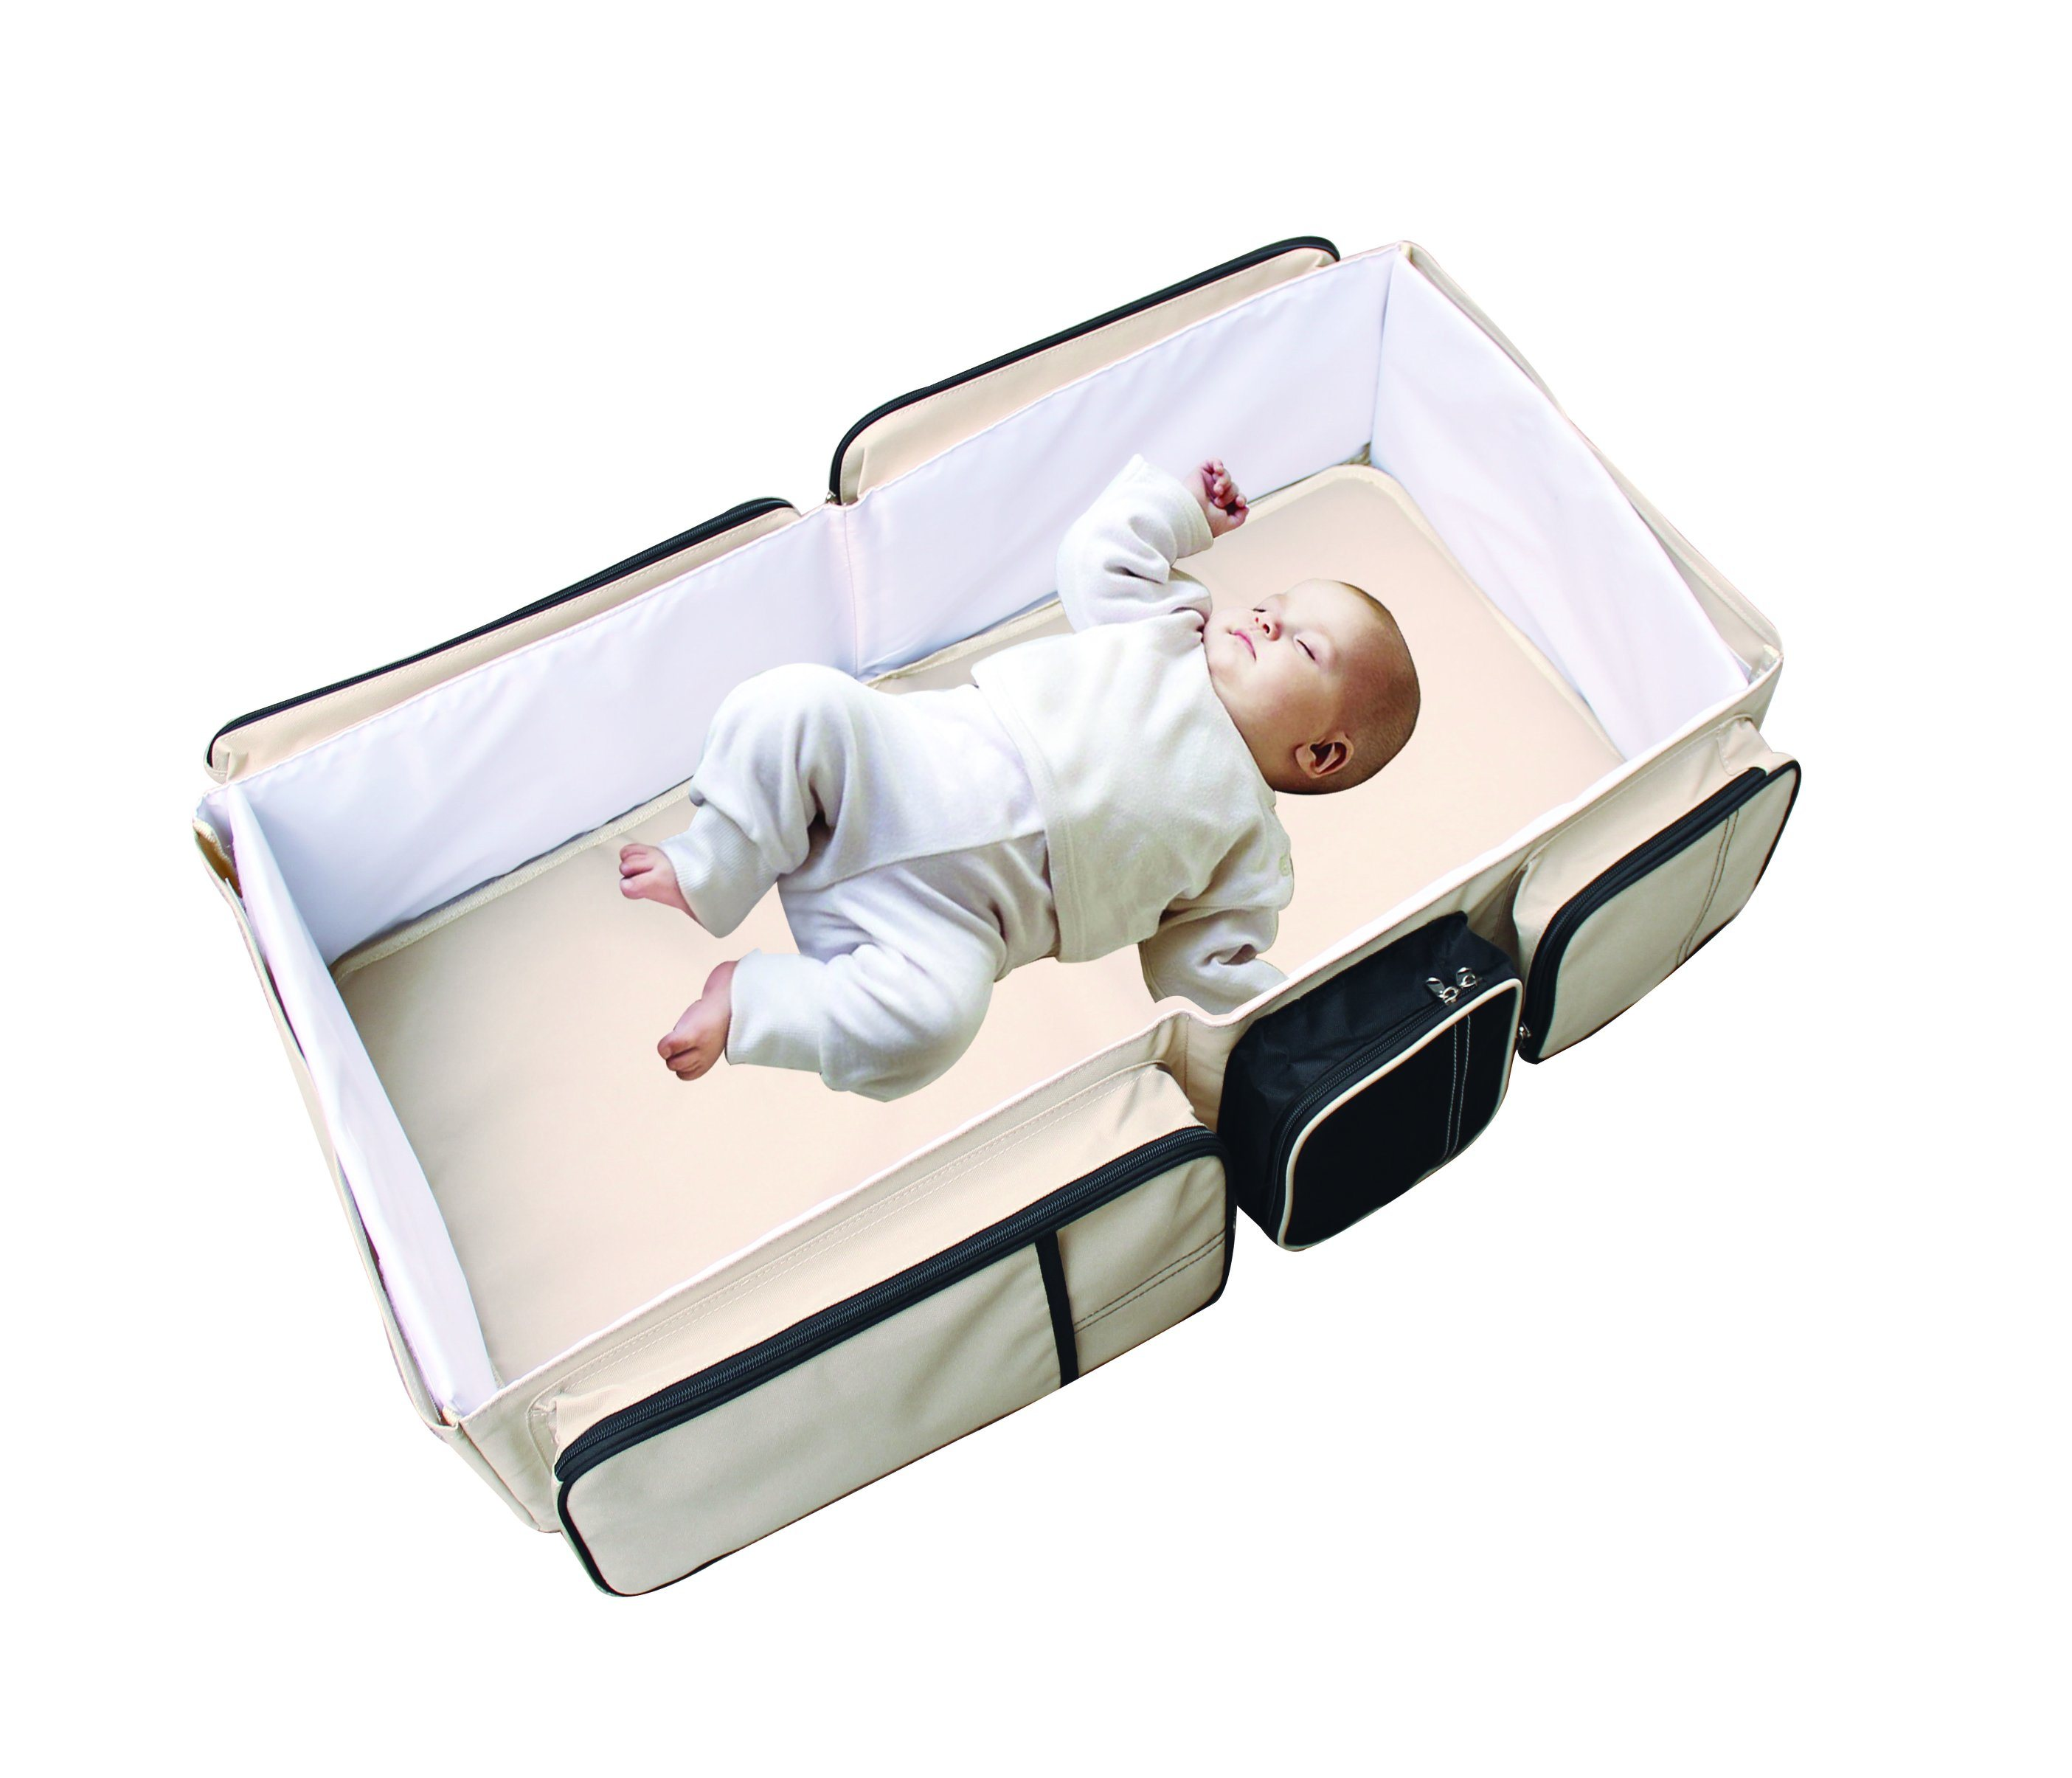 Baby Travel Mattress Hot Item 2 In1 Portable Crib Baby Bag Collapsible Variable Package Multifunctional Baby Travel Bag Bed Folding Bed Anti Mosquito Insulation Game